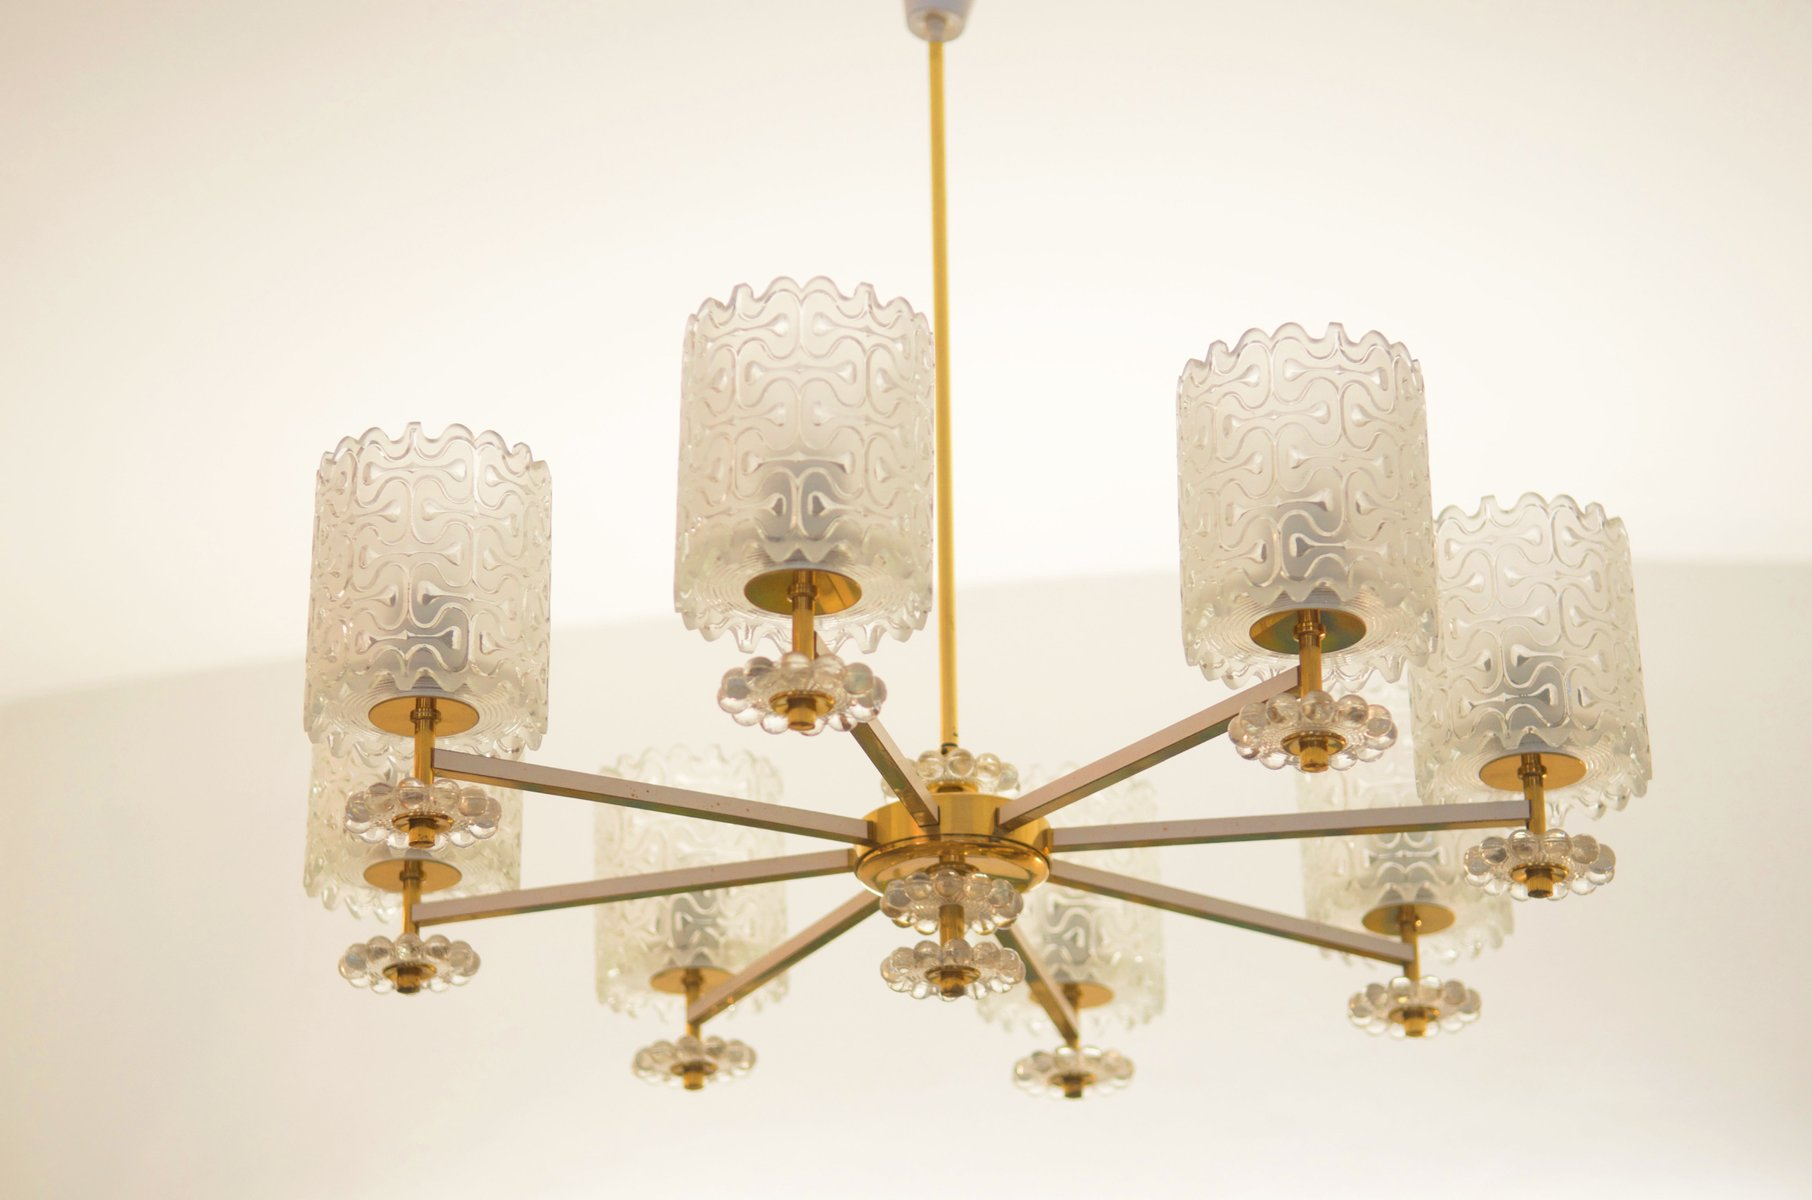 Vintage Brass and Glass Chandelier from Austria 1970s for sale at